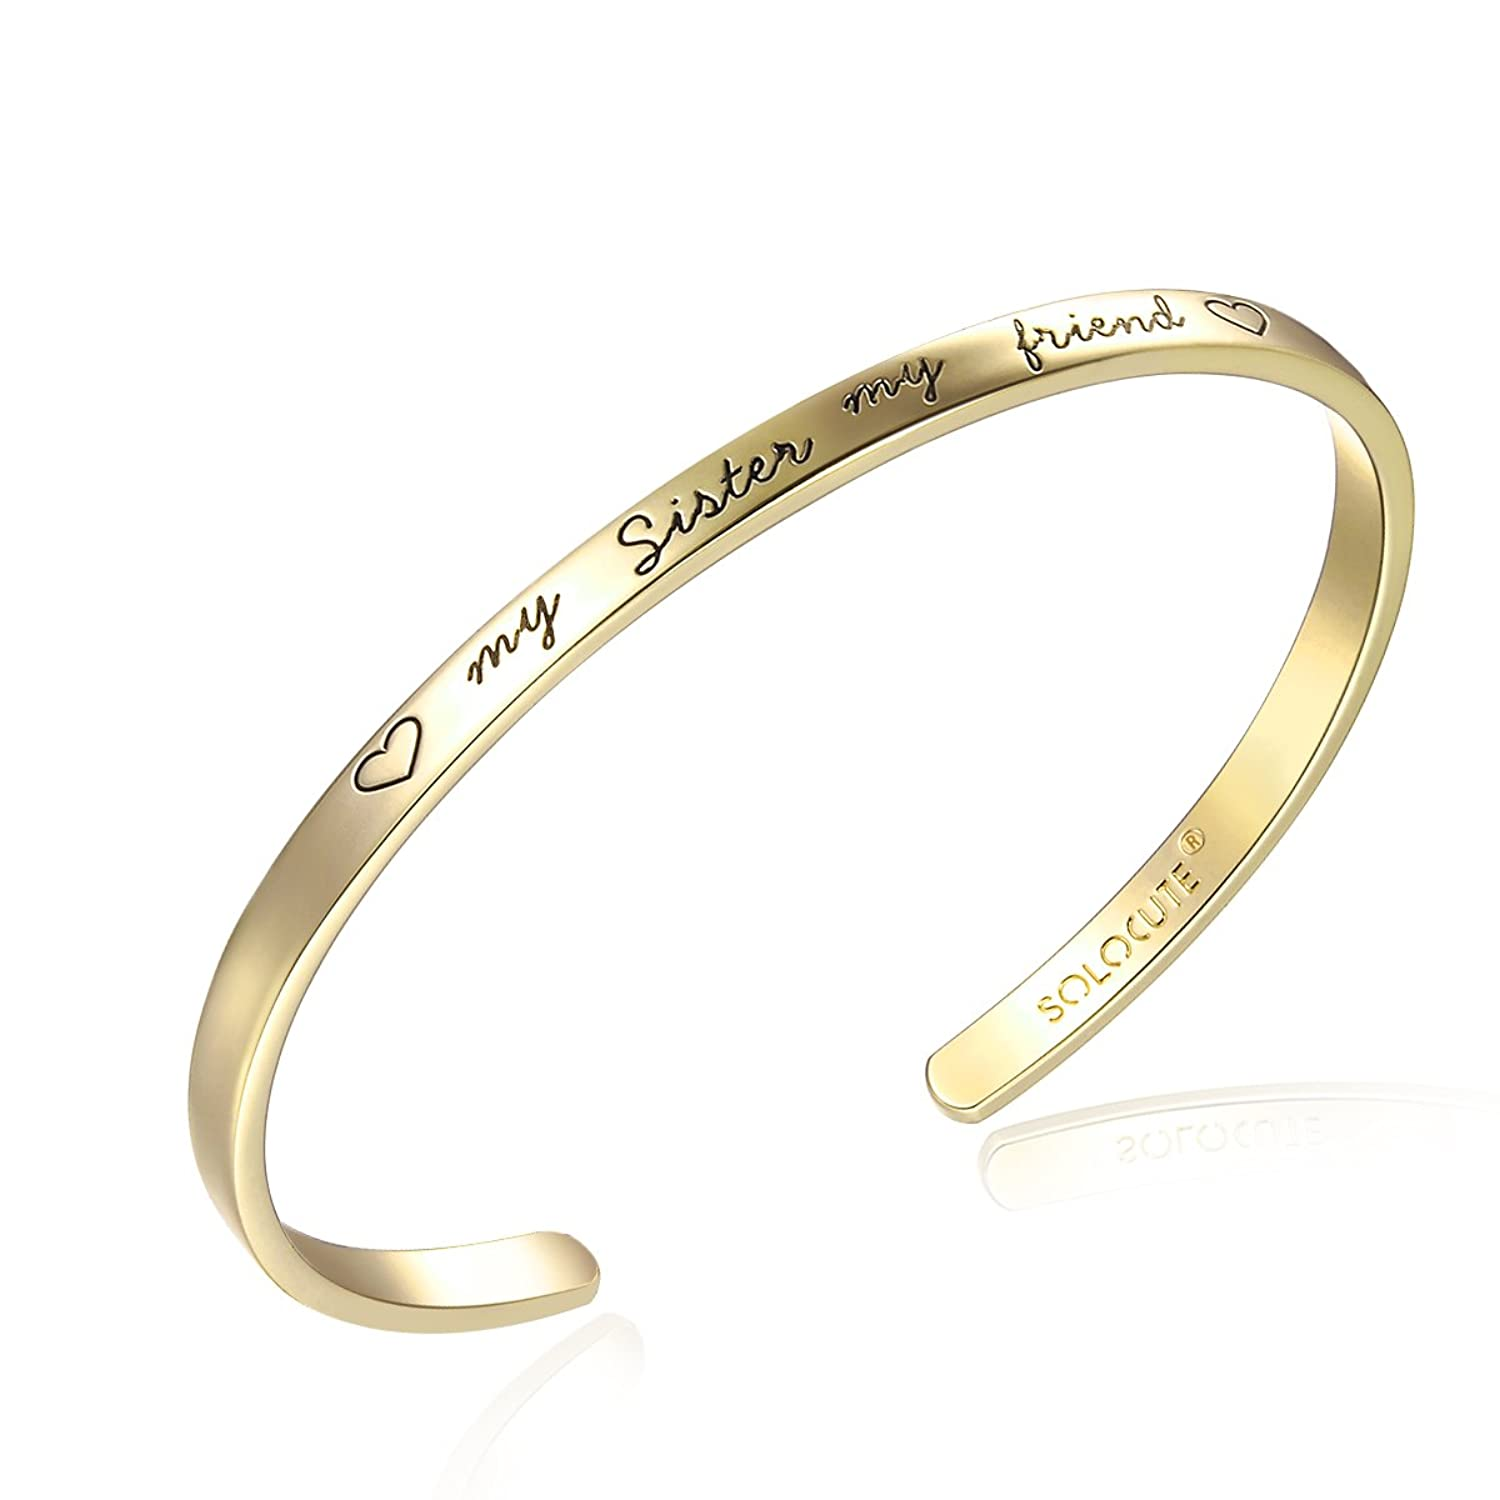 bangle squared gold bracelet with for classic off heart of women bracelets idiom tone collection guqiguli pin yellow bangles